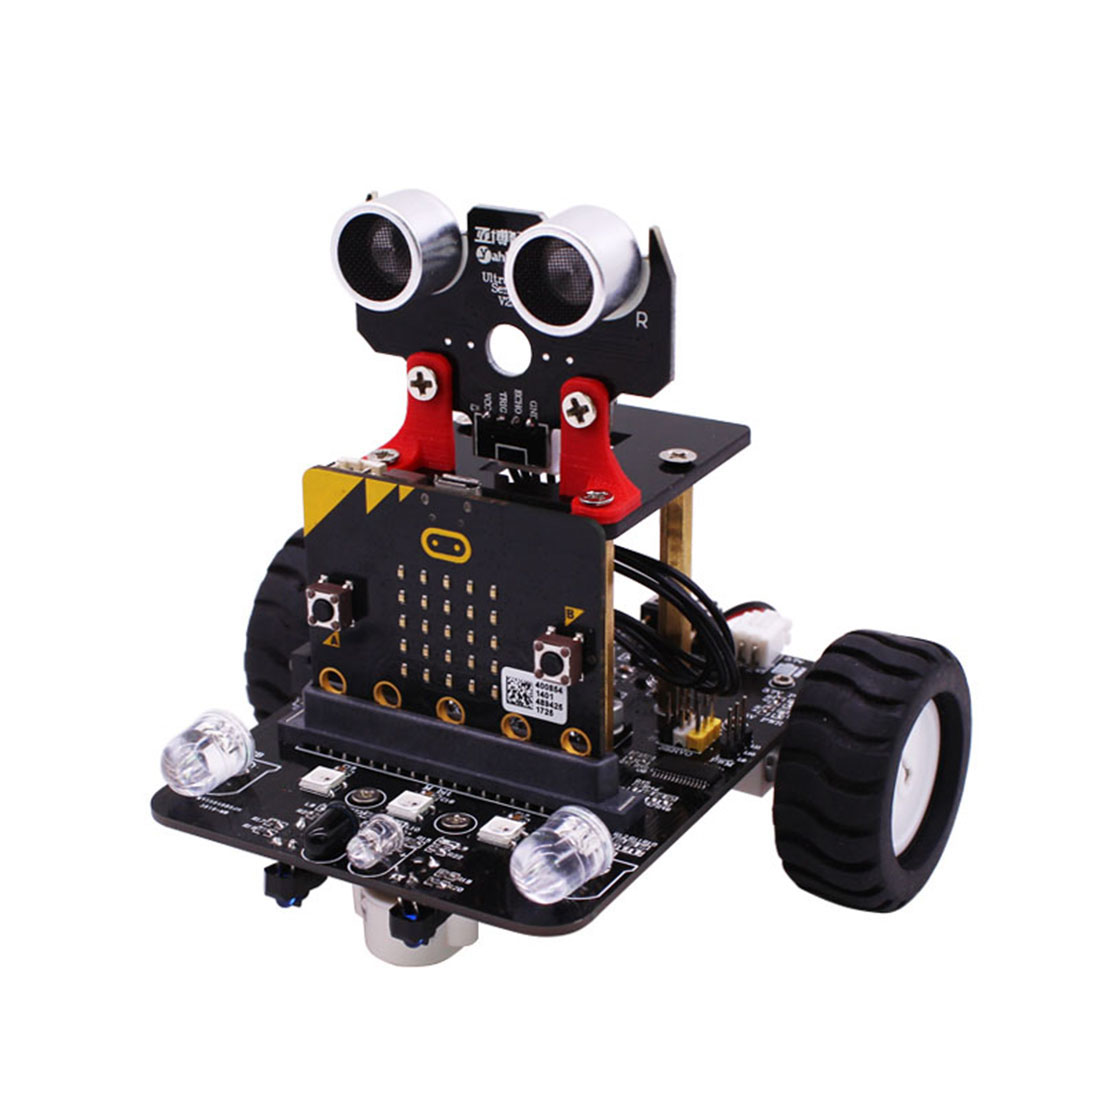 Graphical Programmable Robot Car With Bluetooth IR And Tracking Module Stem Steam Robot Car Toy For Micro:bit(Without Mainboard)